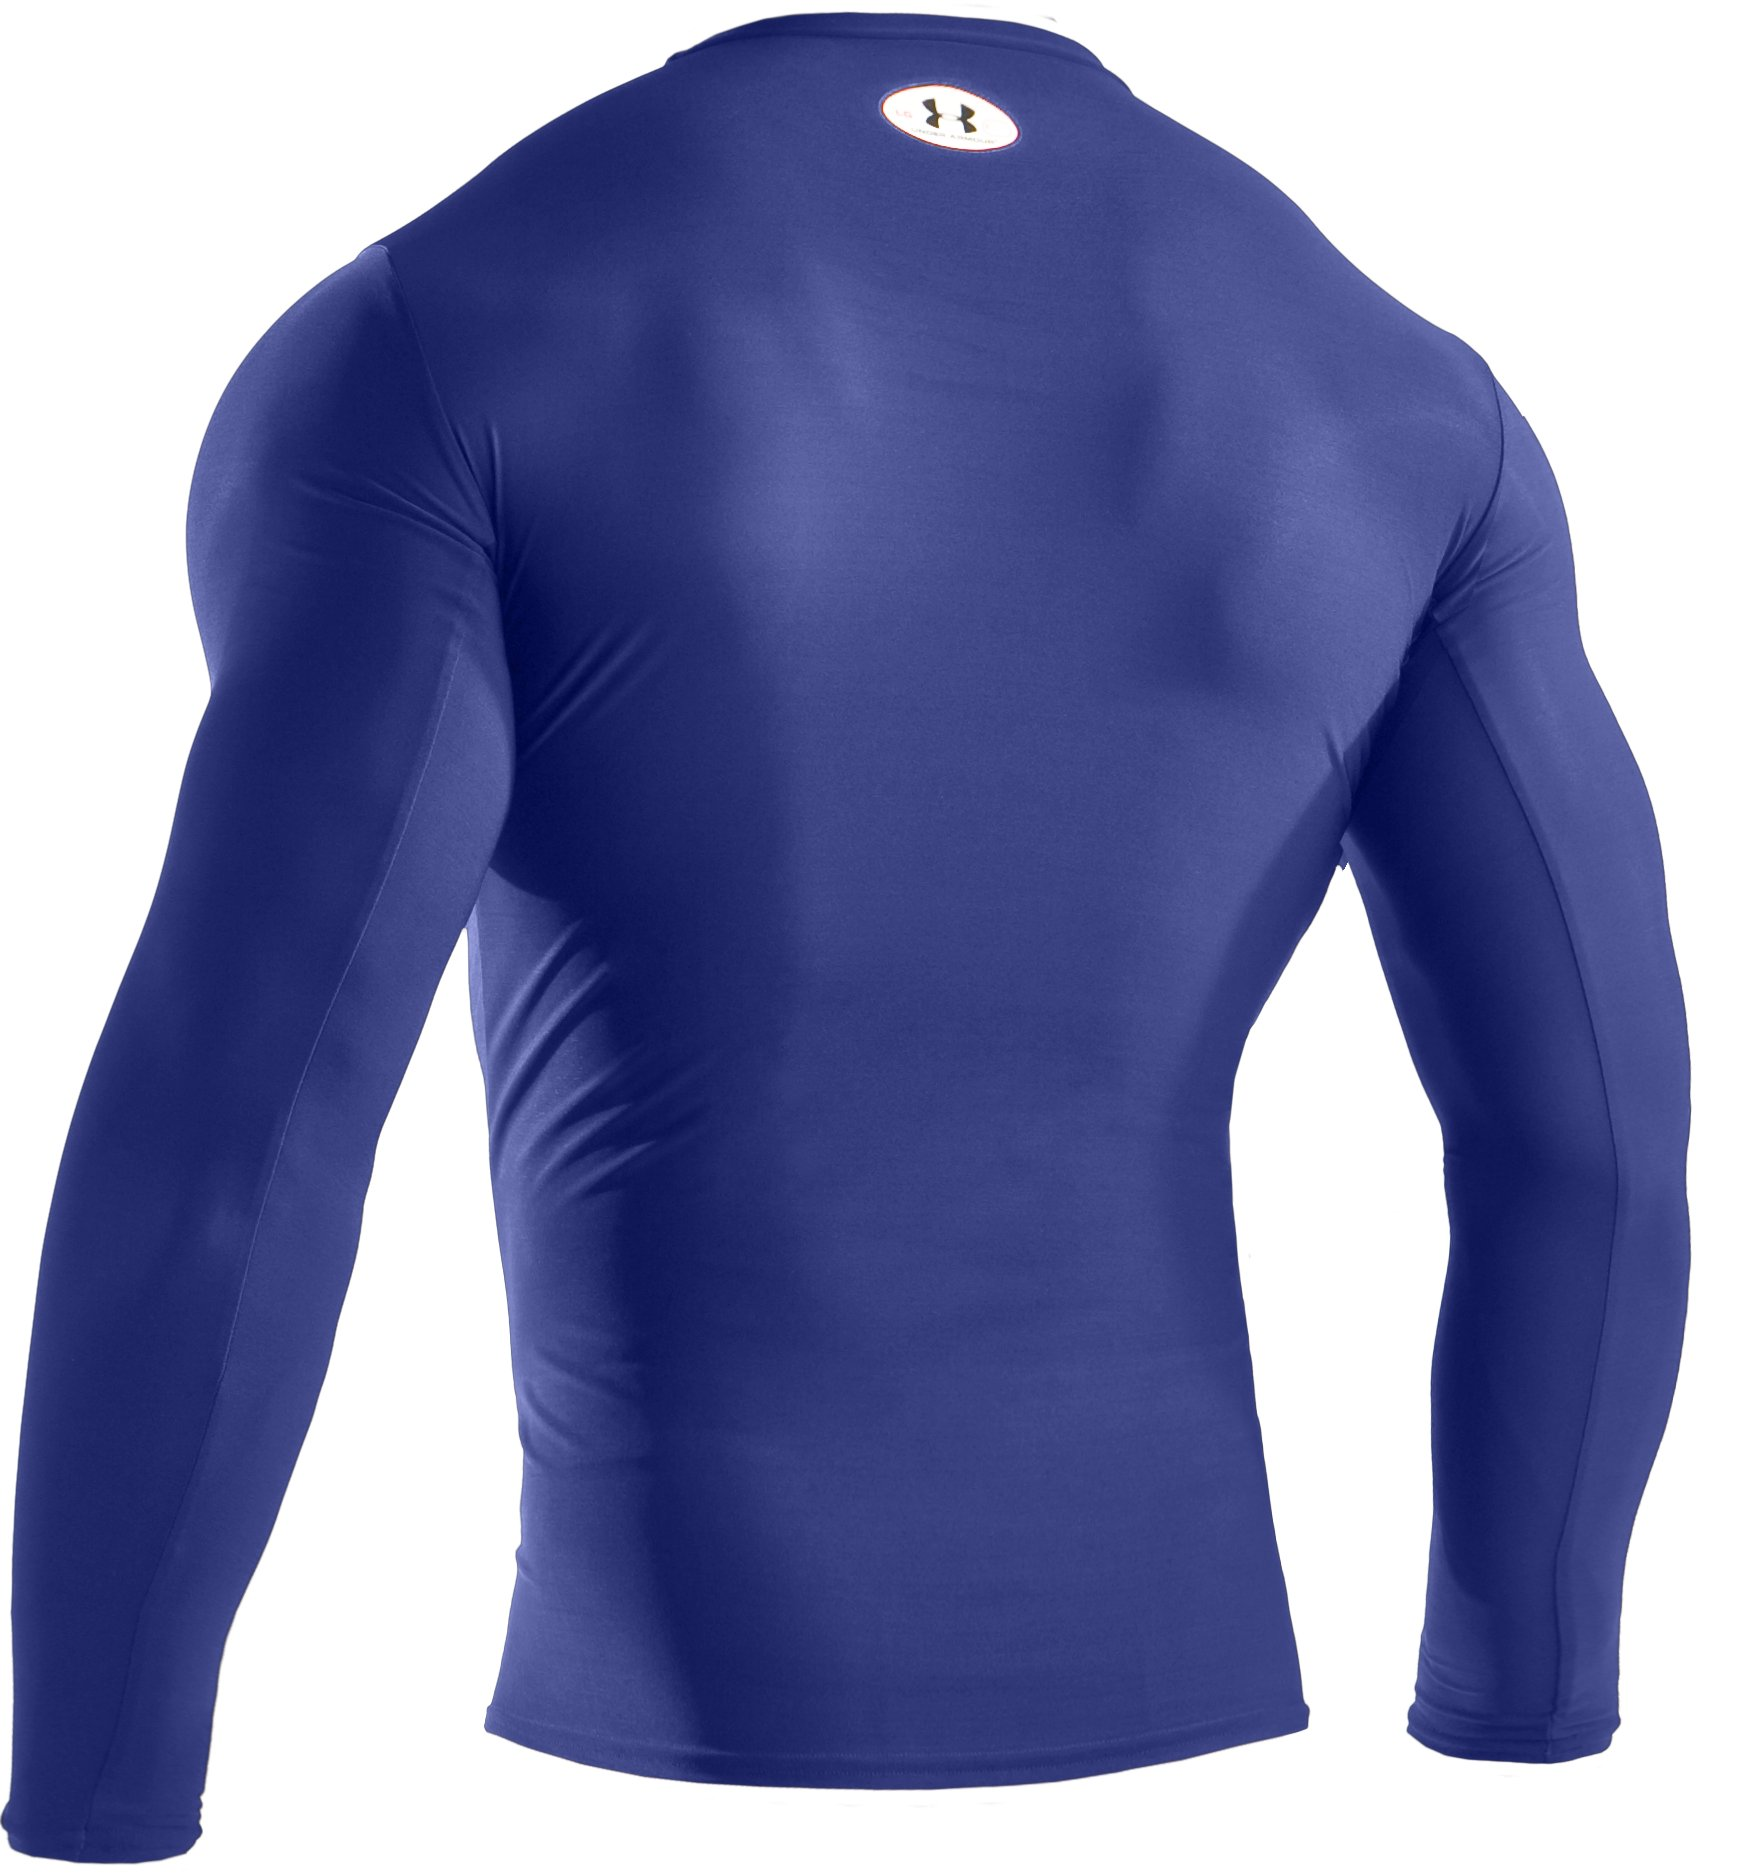 Men's HeatGear® Compression Long Sleeve T-Shirt, Royal, undefined